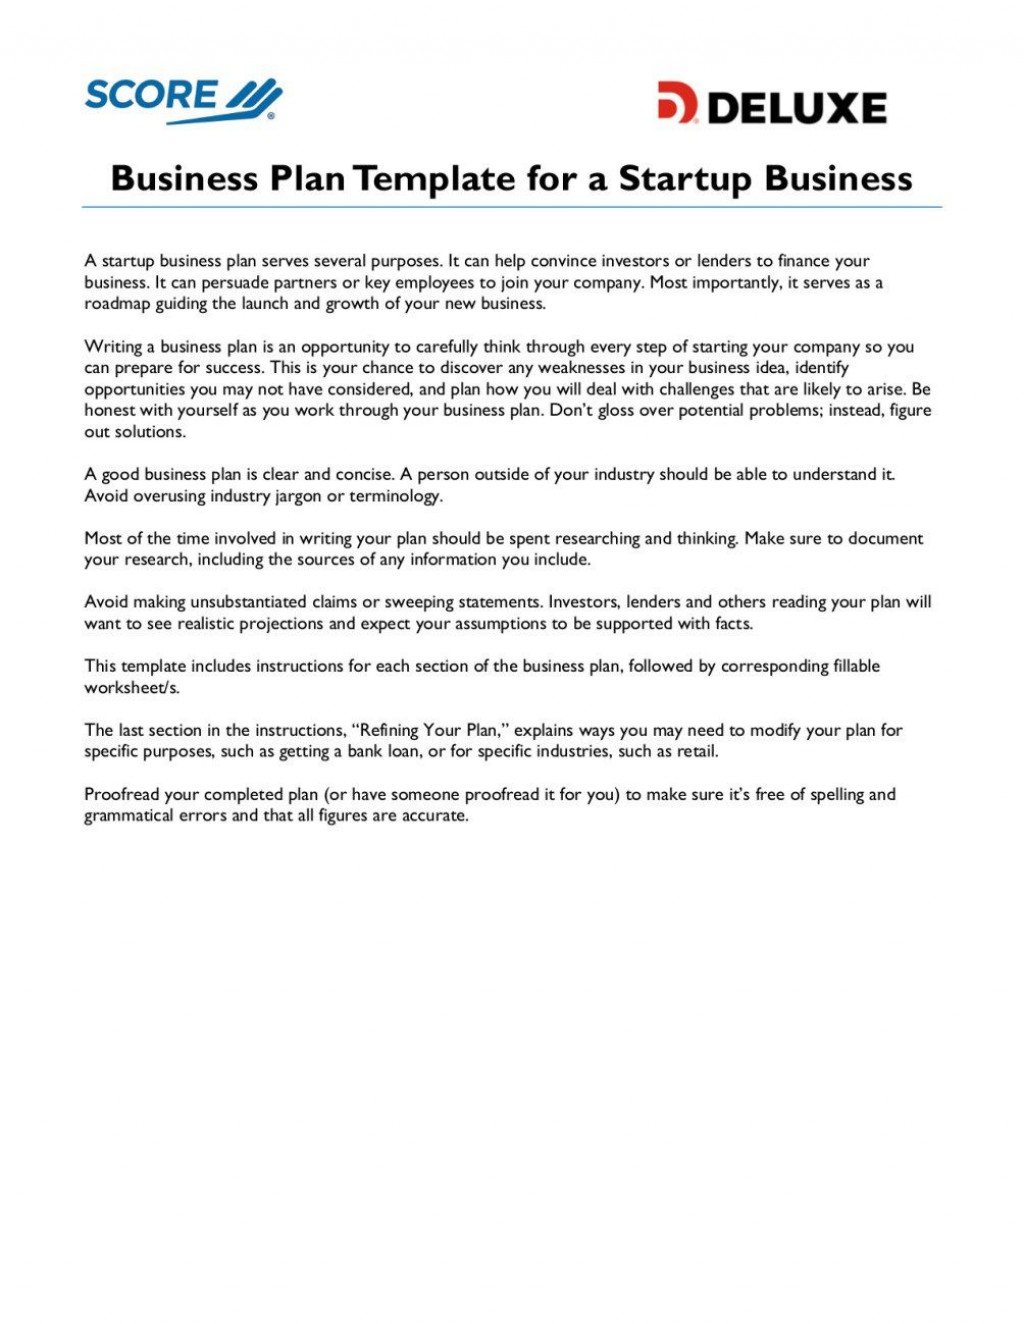 008 Surprising Score Deluxe Busines Plan Template High Definition Large